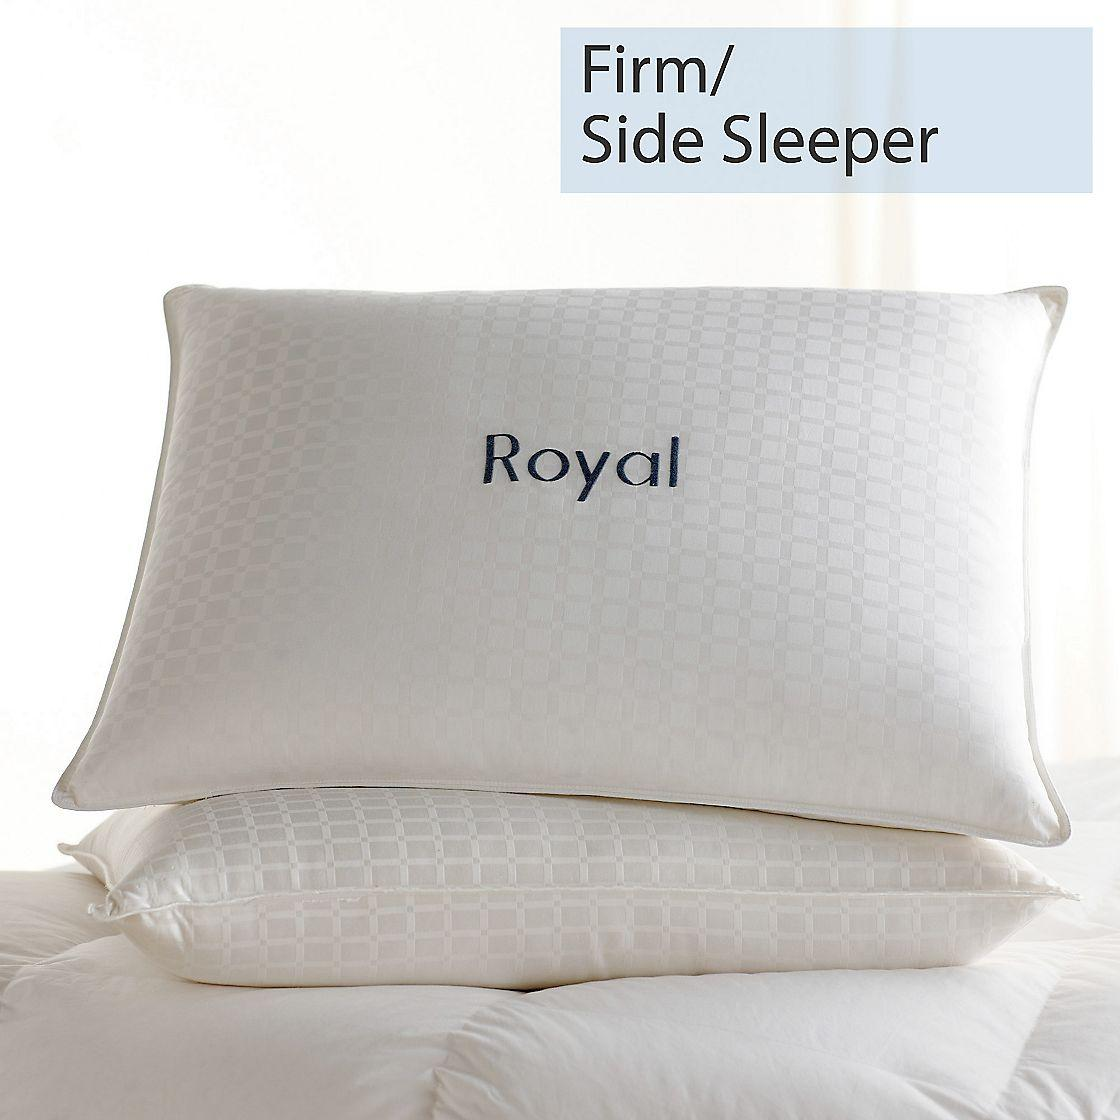 Special Legends Royal Down Pillow Firm Side Sleeper